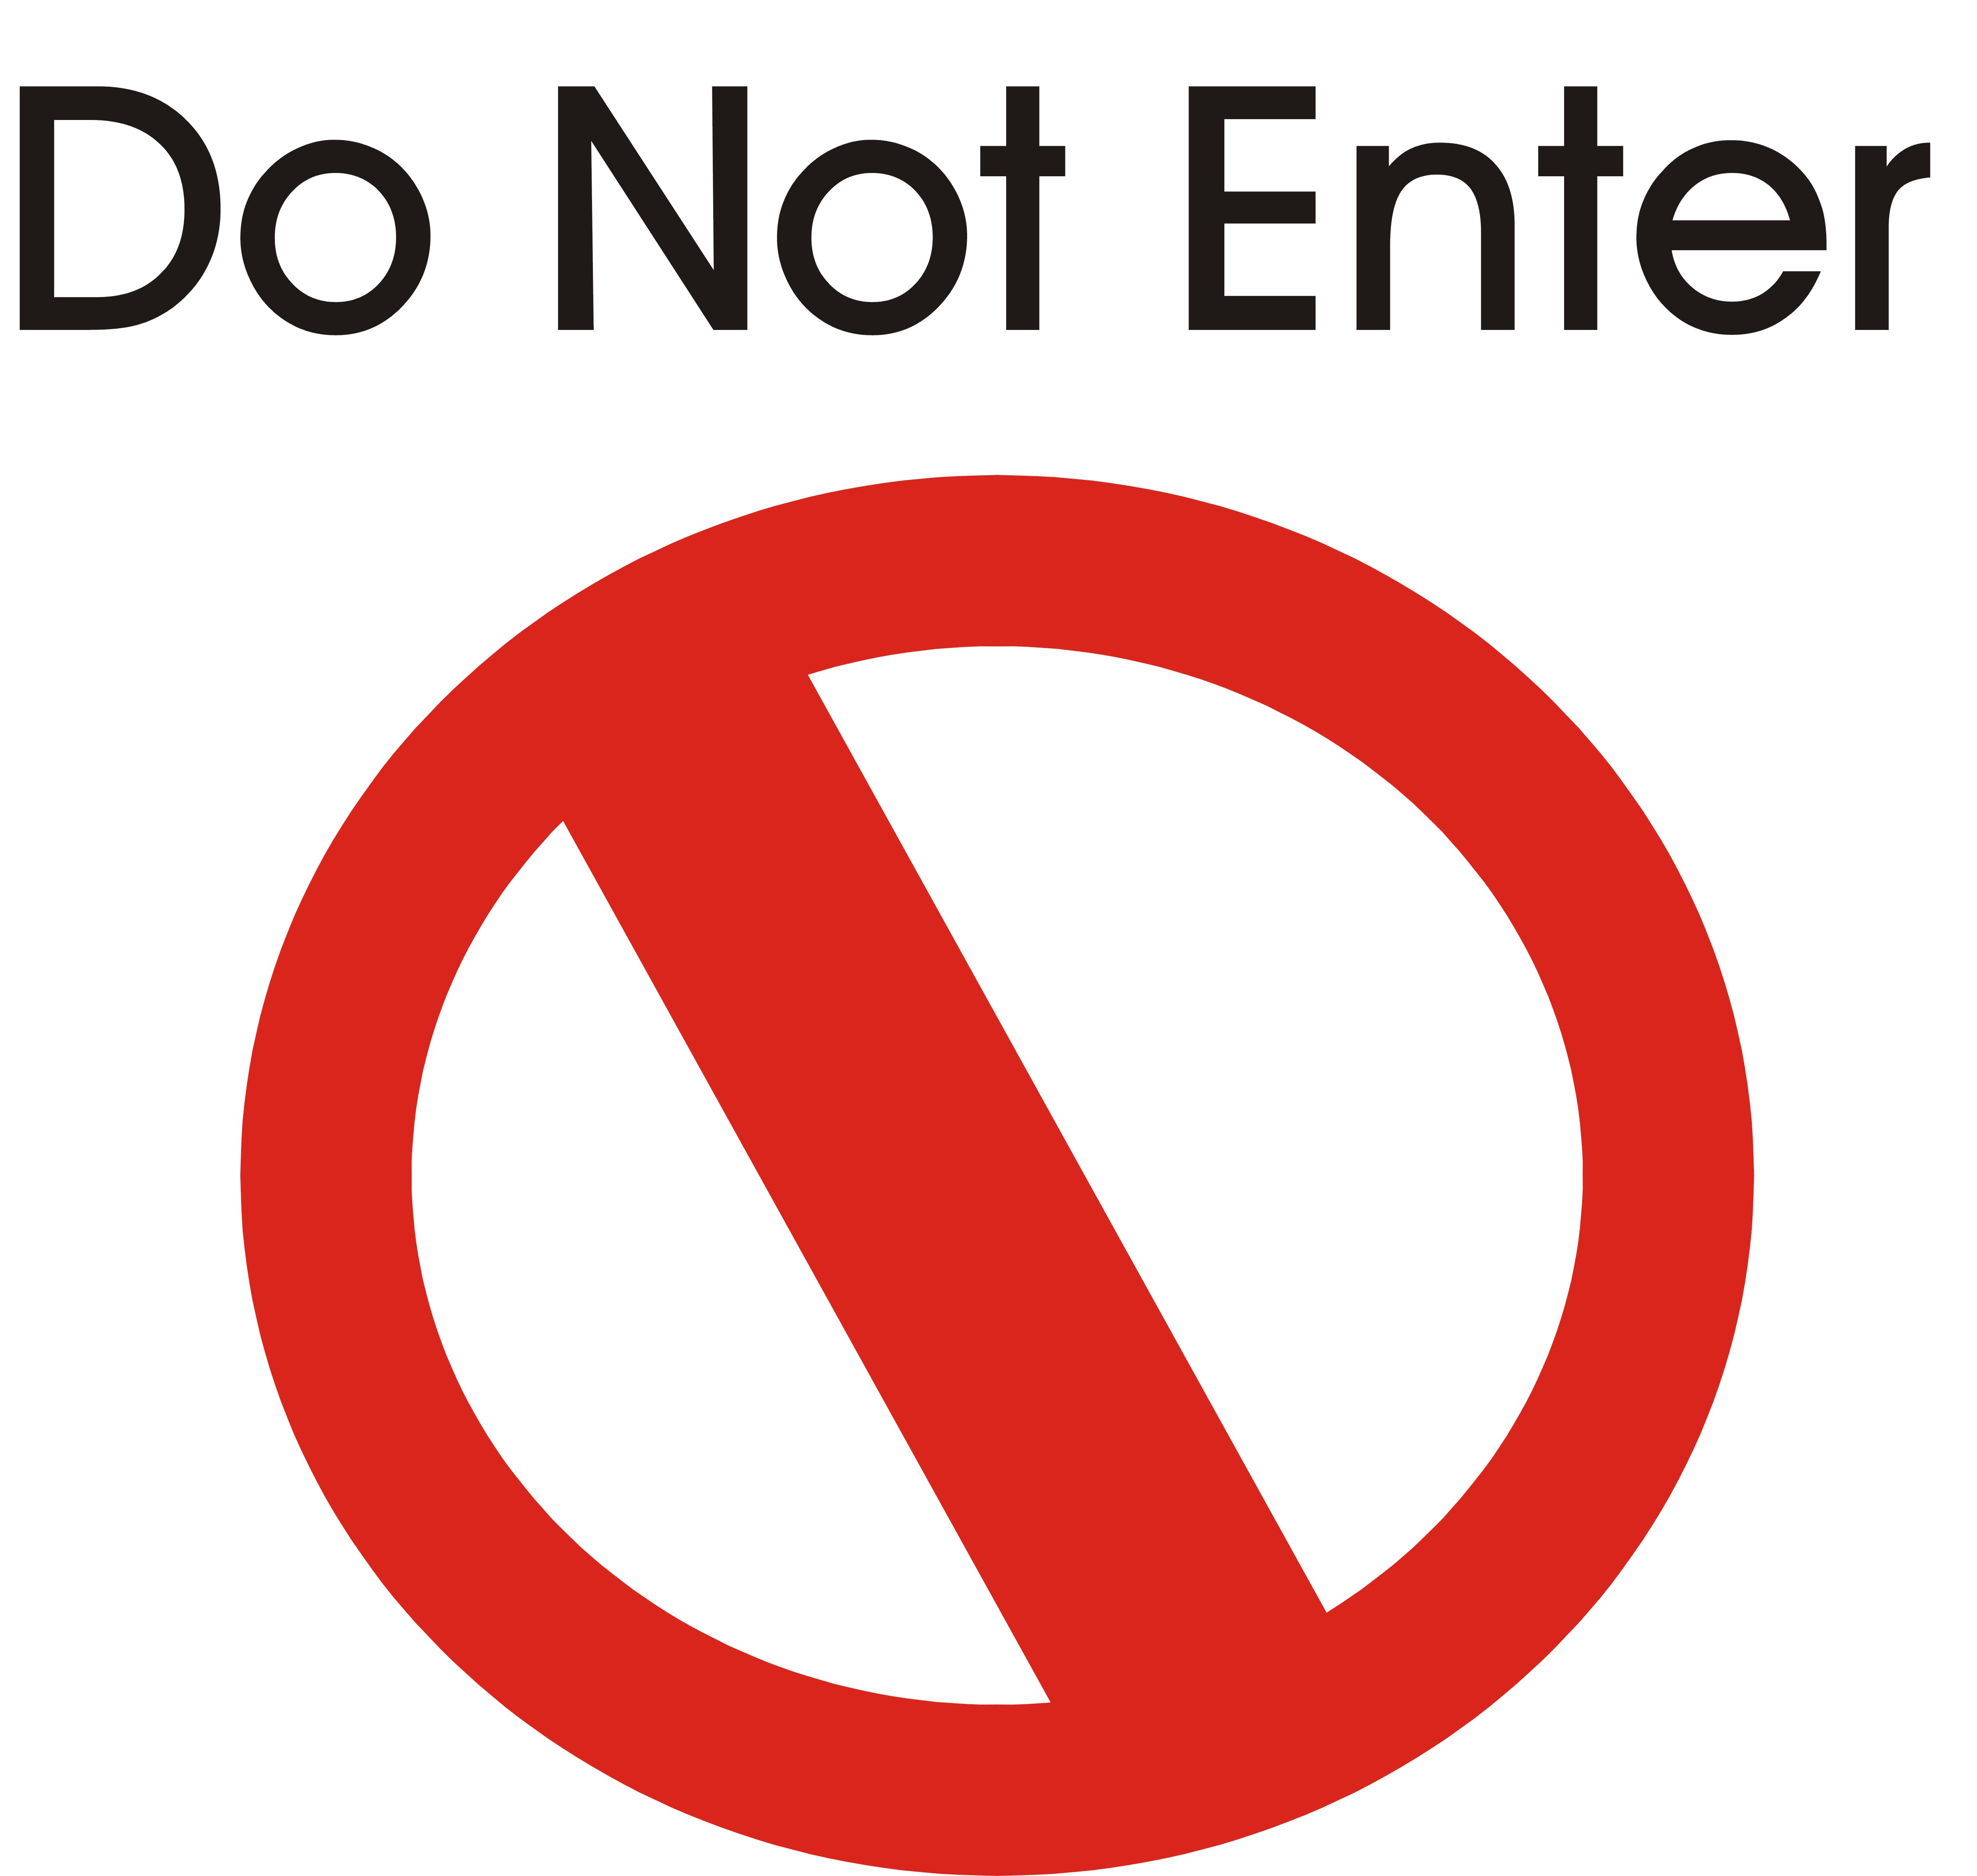 Do Not Enter - ClipArt Best